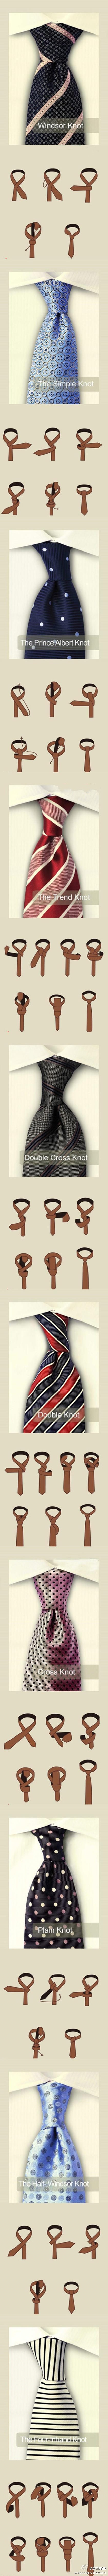 Different Ways To Tie A Tie Pinterest Marwer  9waystofoldapocketsquareinfographic The Drape Knot: How